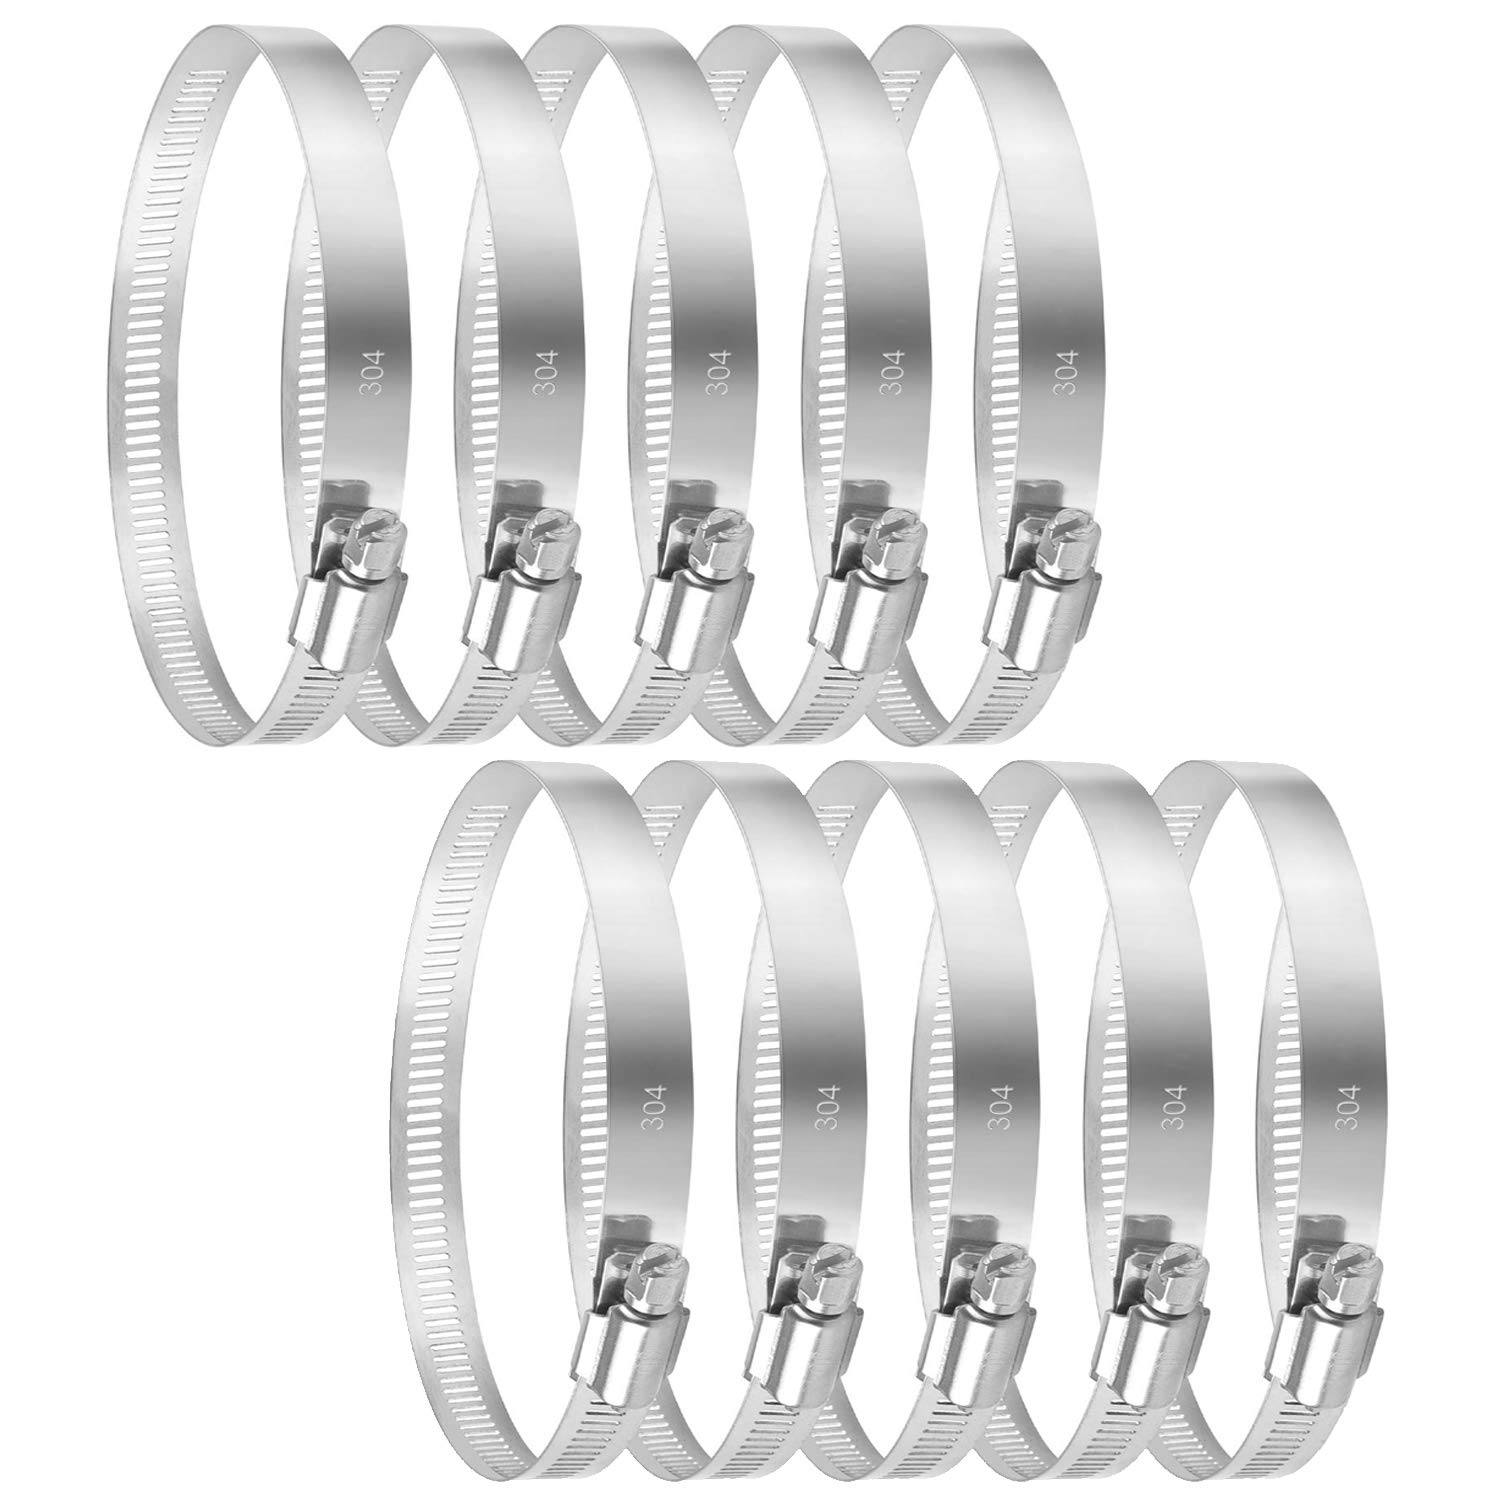 """Quickun 10Pcs Stainless Steel Hose Clamp Worm Gear Clamps Adjustable 2.8""""-2.75""""(46-70mm) Range, Fuel Line Clamp for Water Pipe, Hose Clips, Automative and Mechanical Application"""